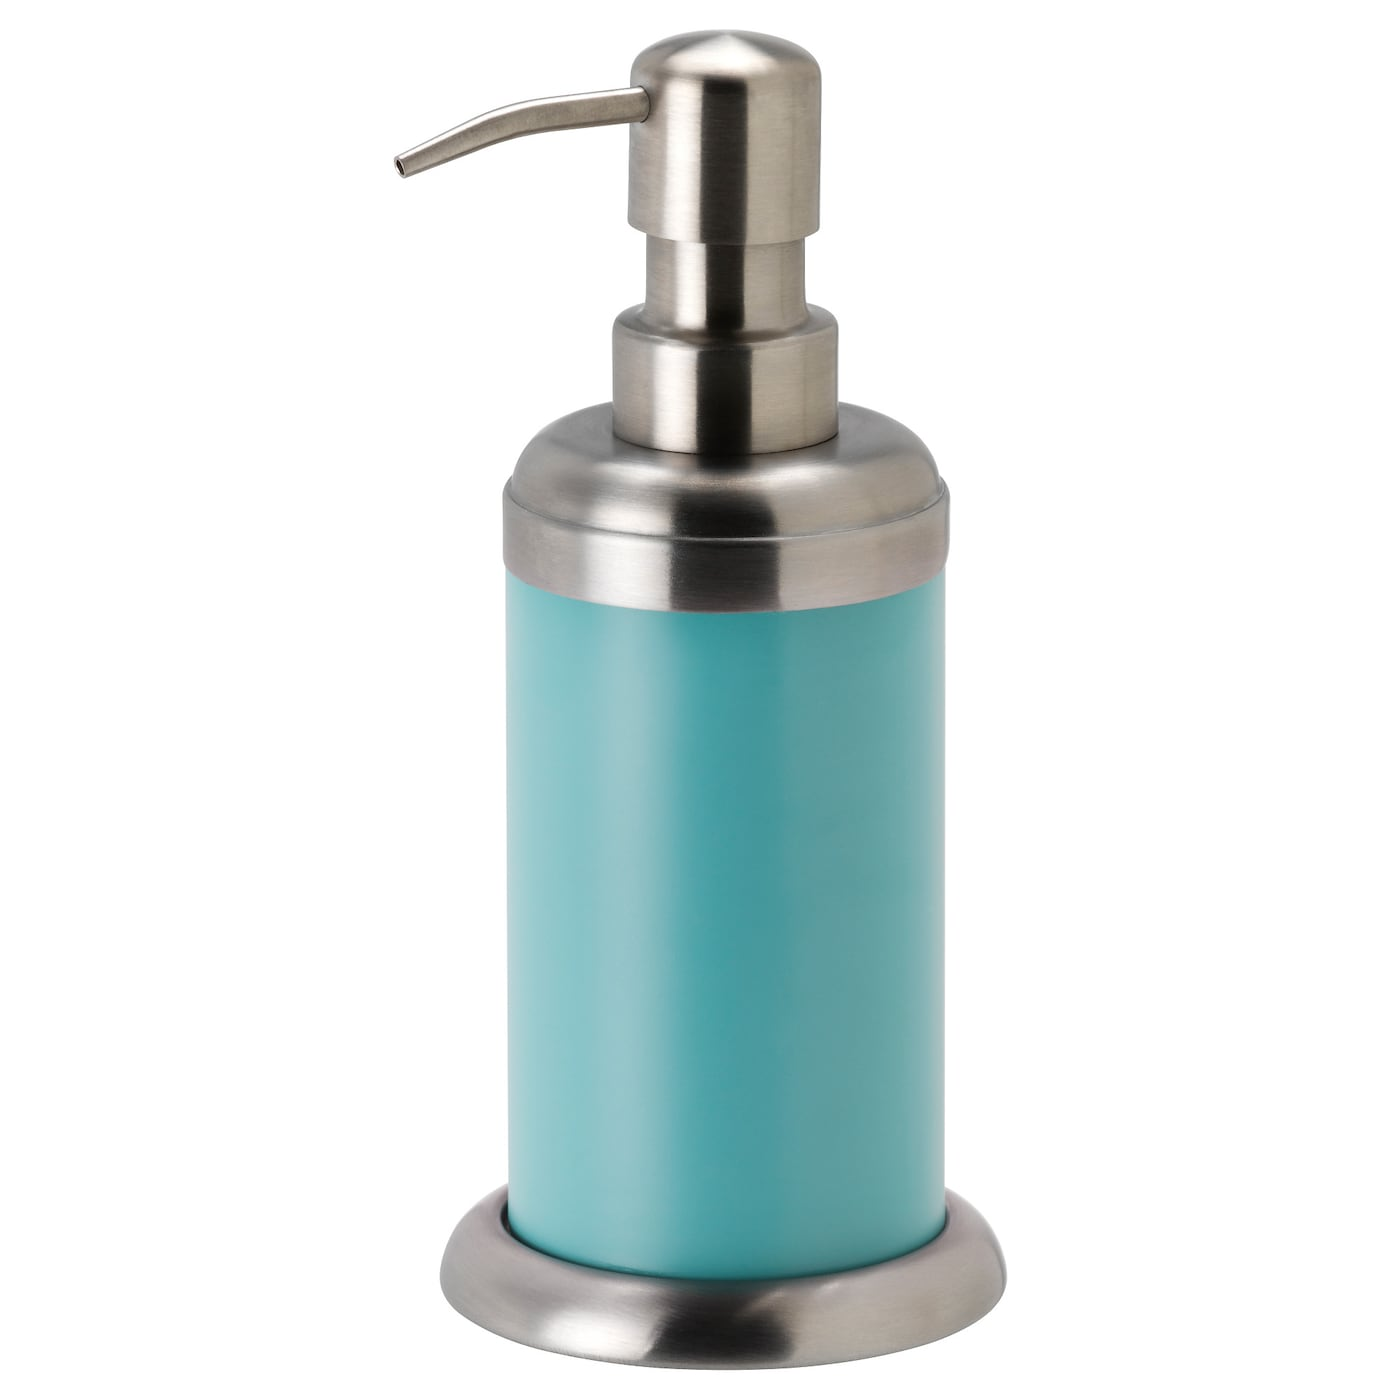 IKEA MJÖSA soap dispenser